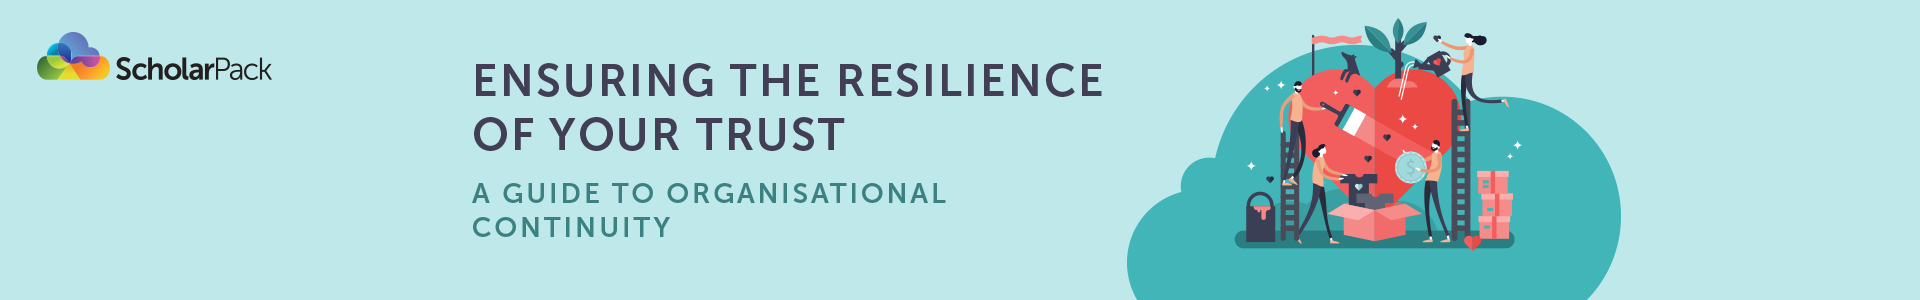 Ensuring the resilience of your trust